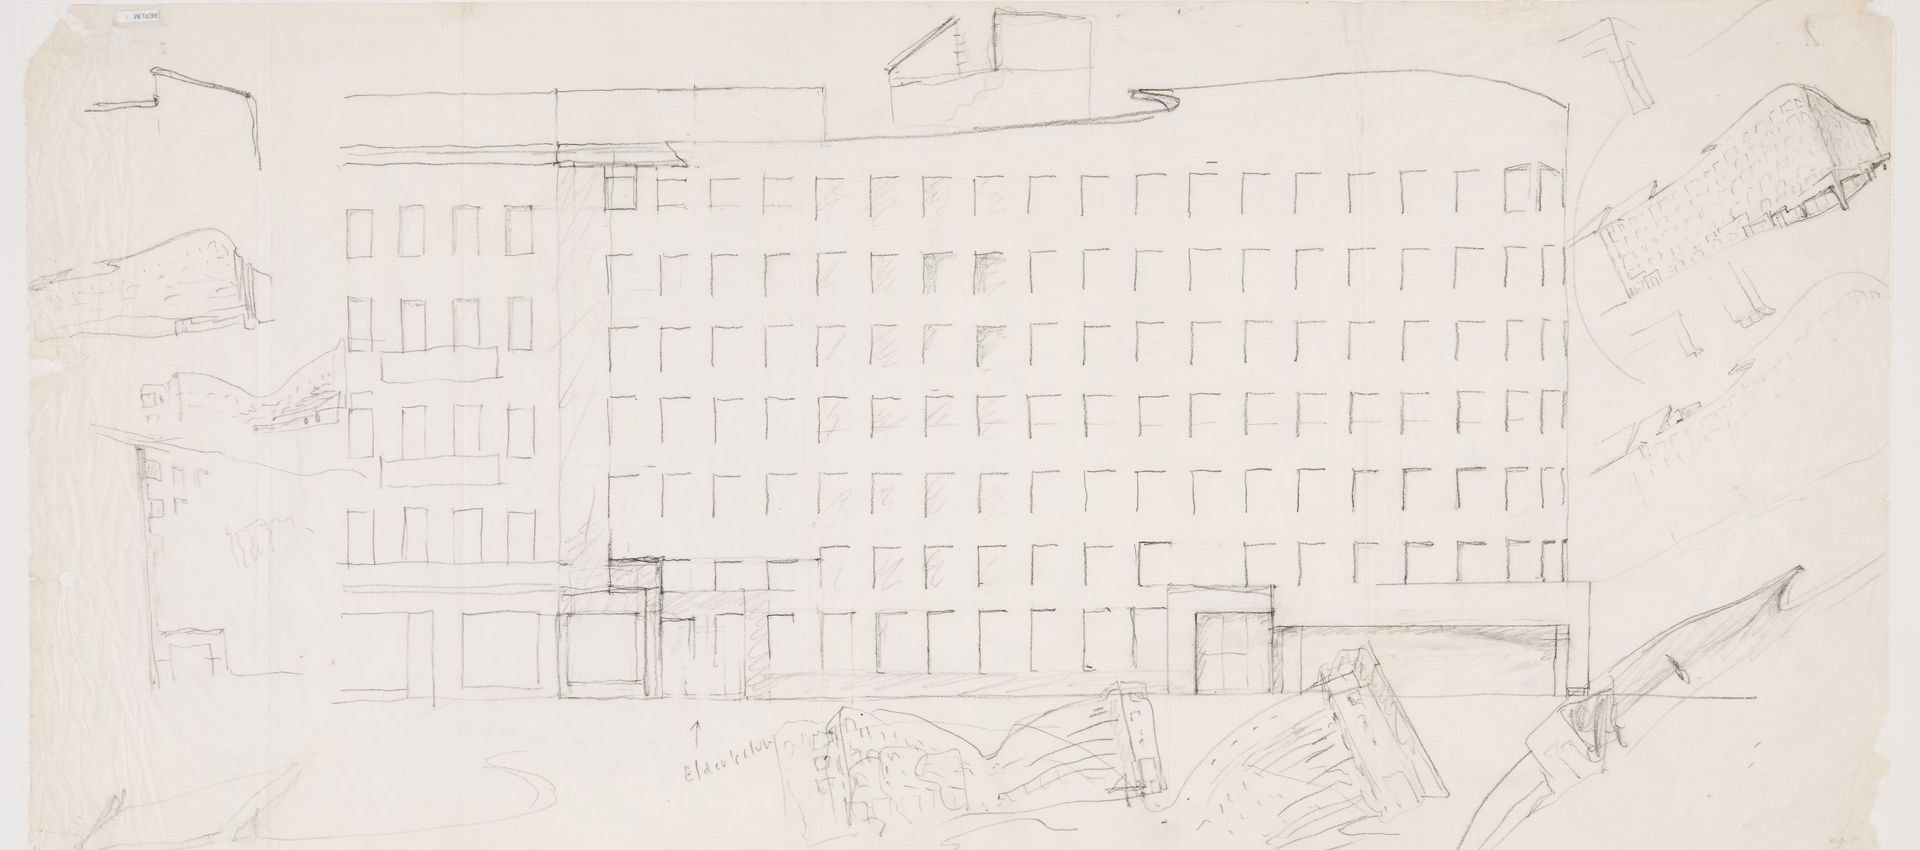 Álvaro Siza. Elevation of southeast facade with sketches, Bonjour Tristesse, c. 1980. Image courtesy via CCA